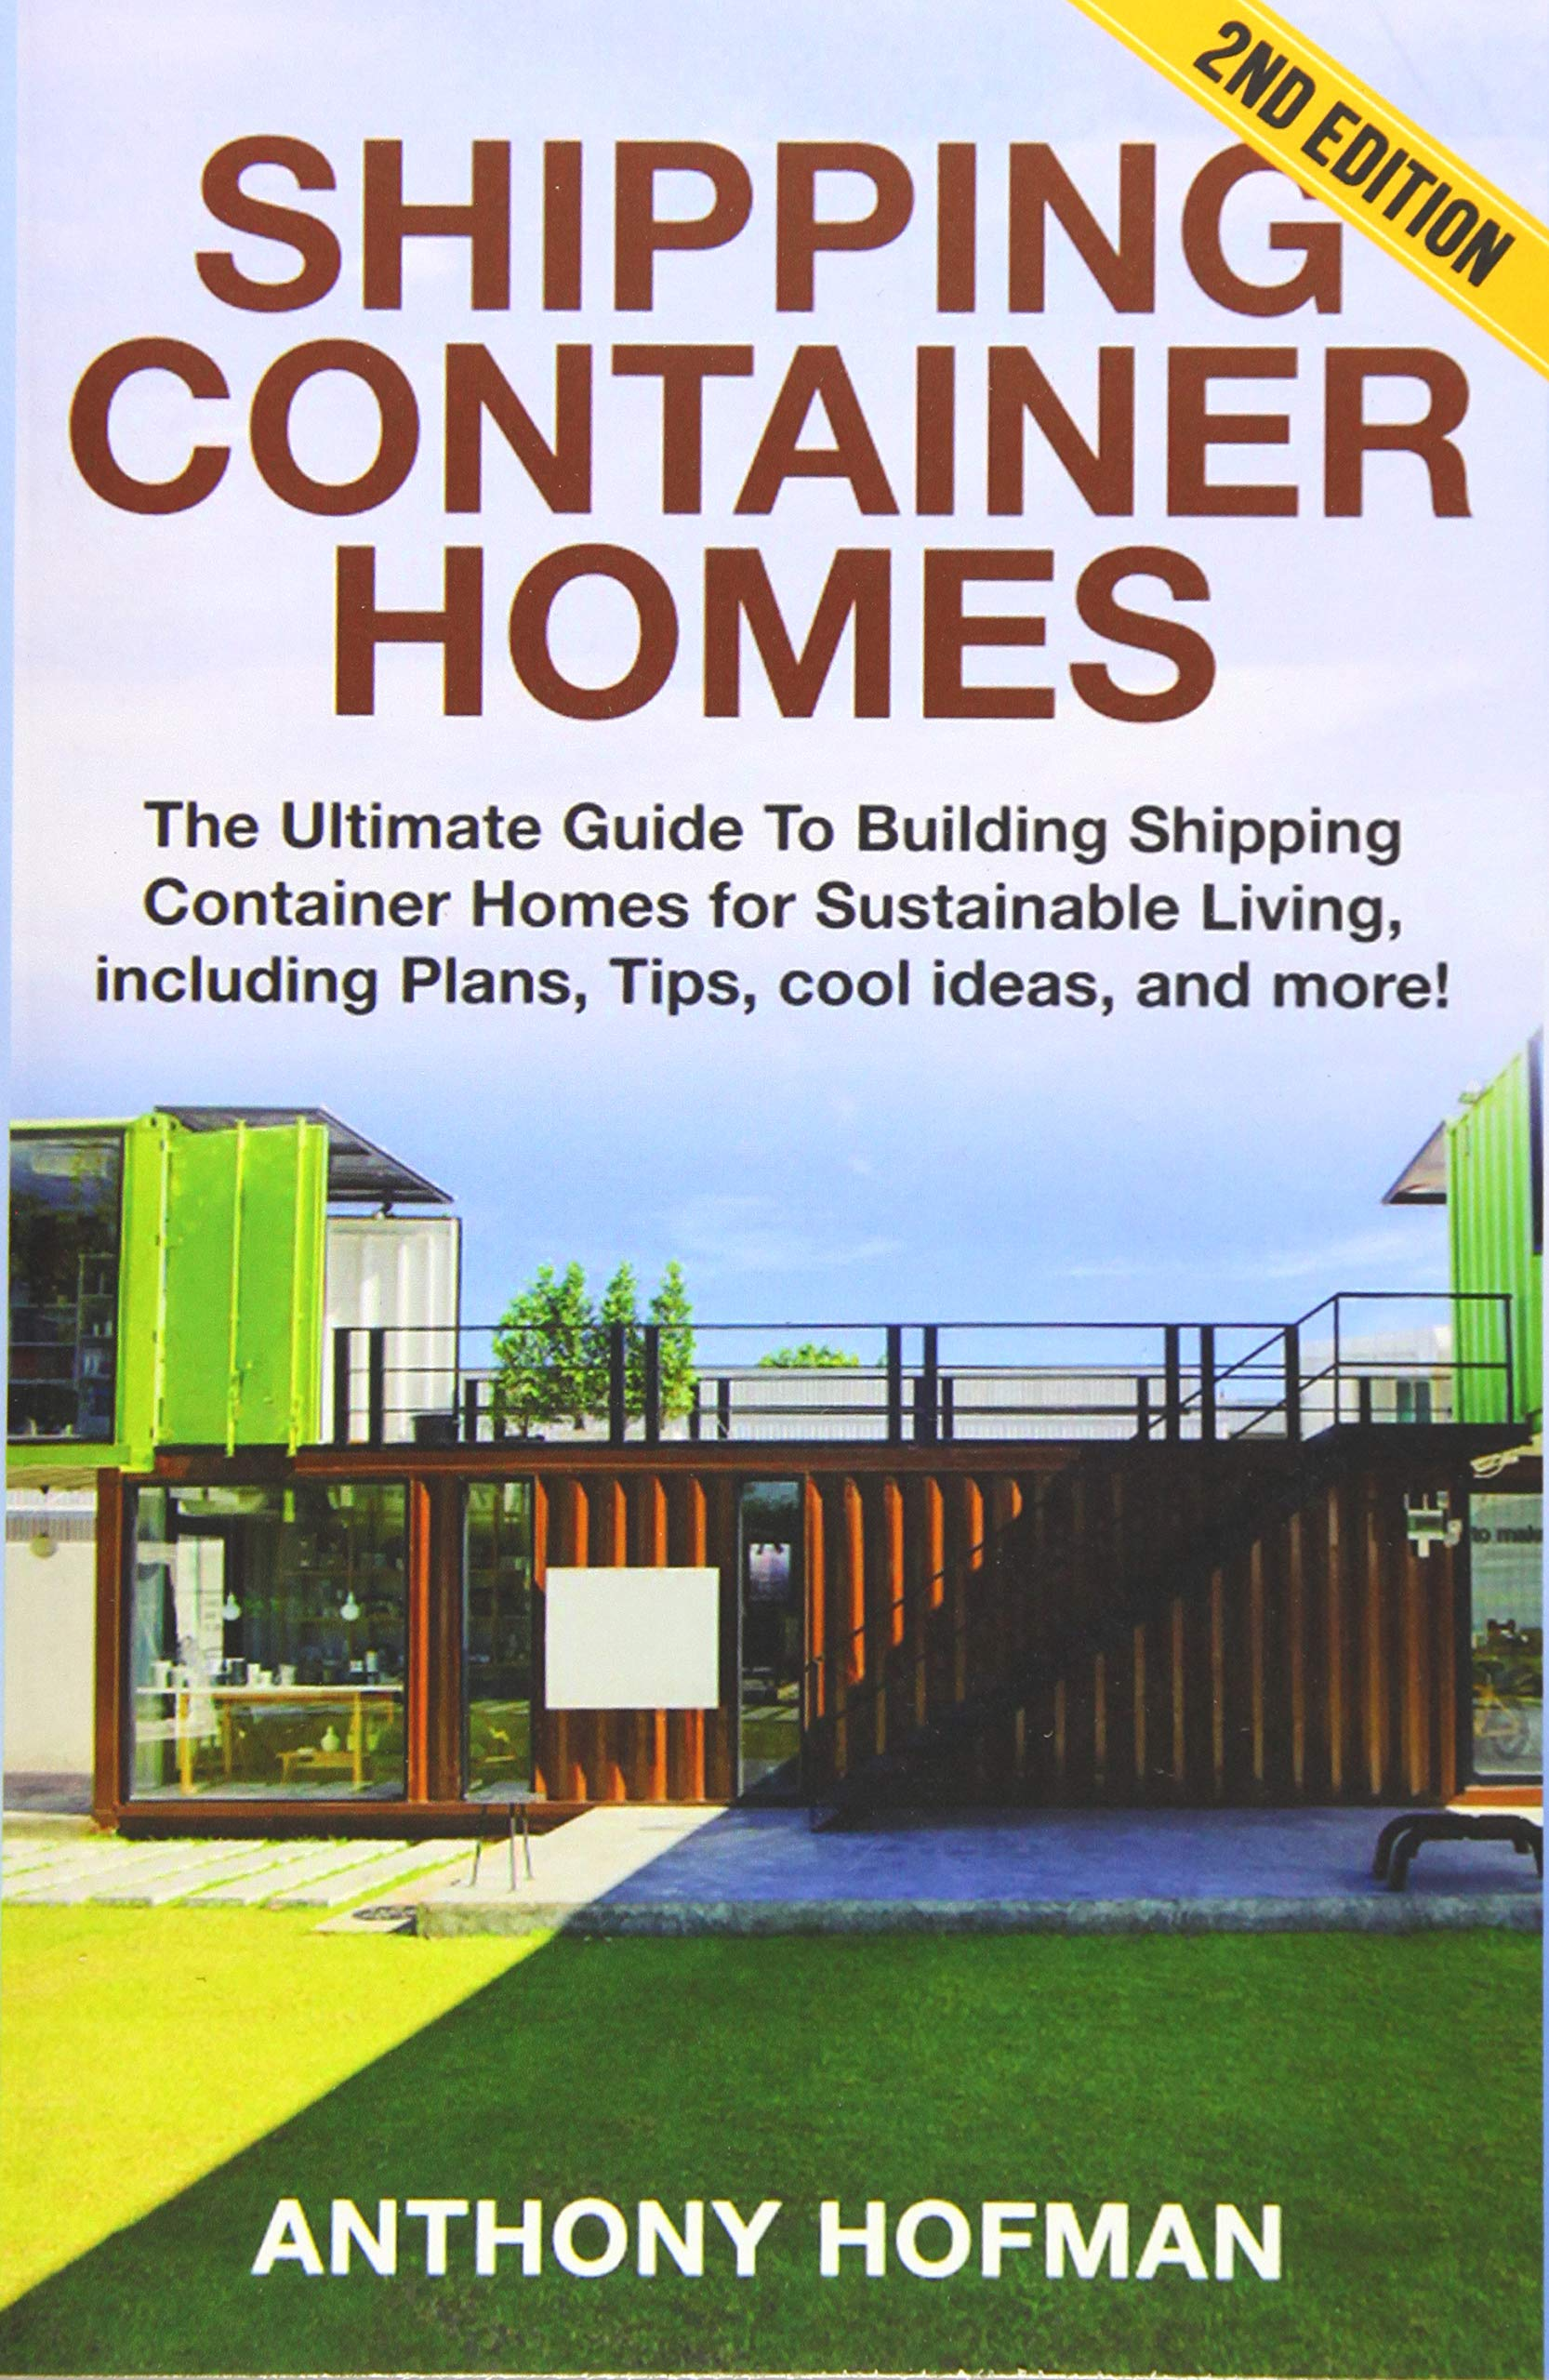 Shipping Container Homes The Ultimate Guide To Building